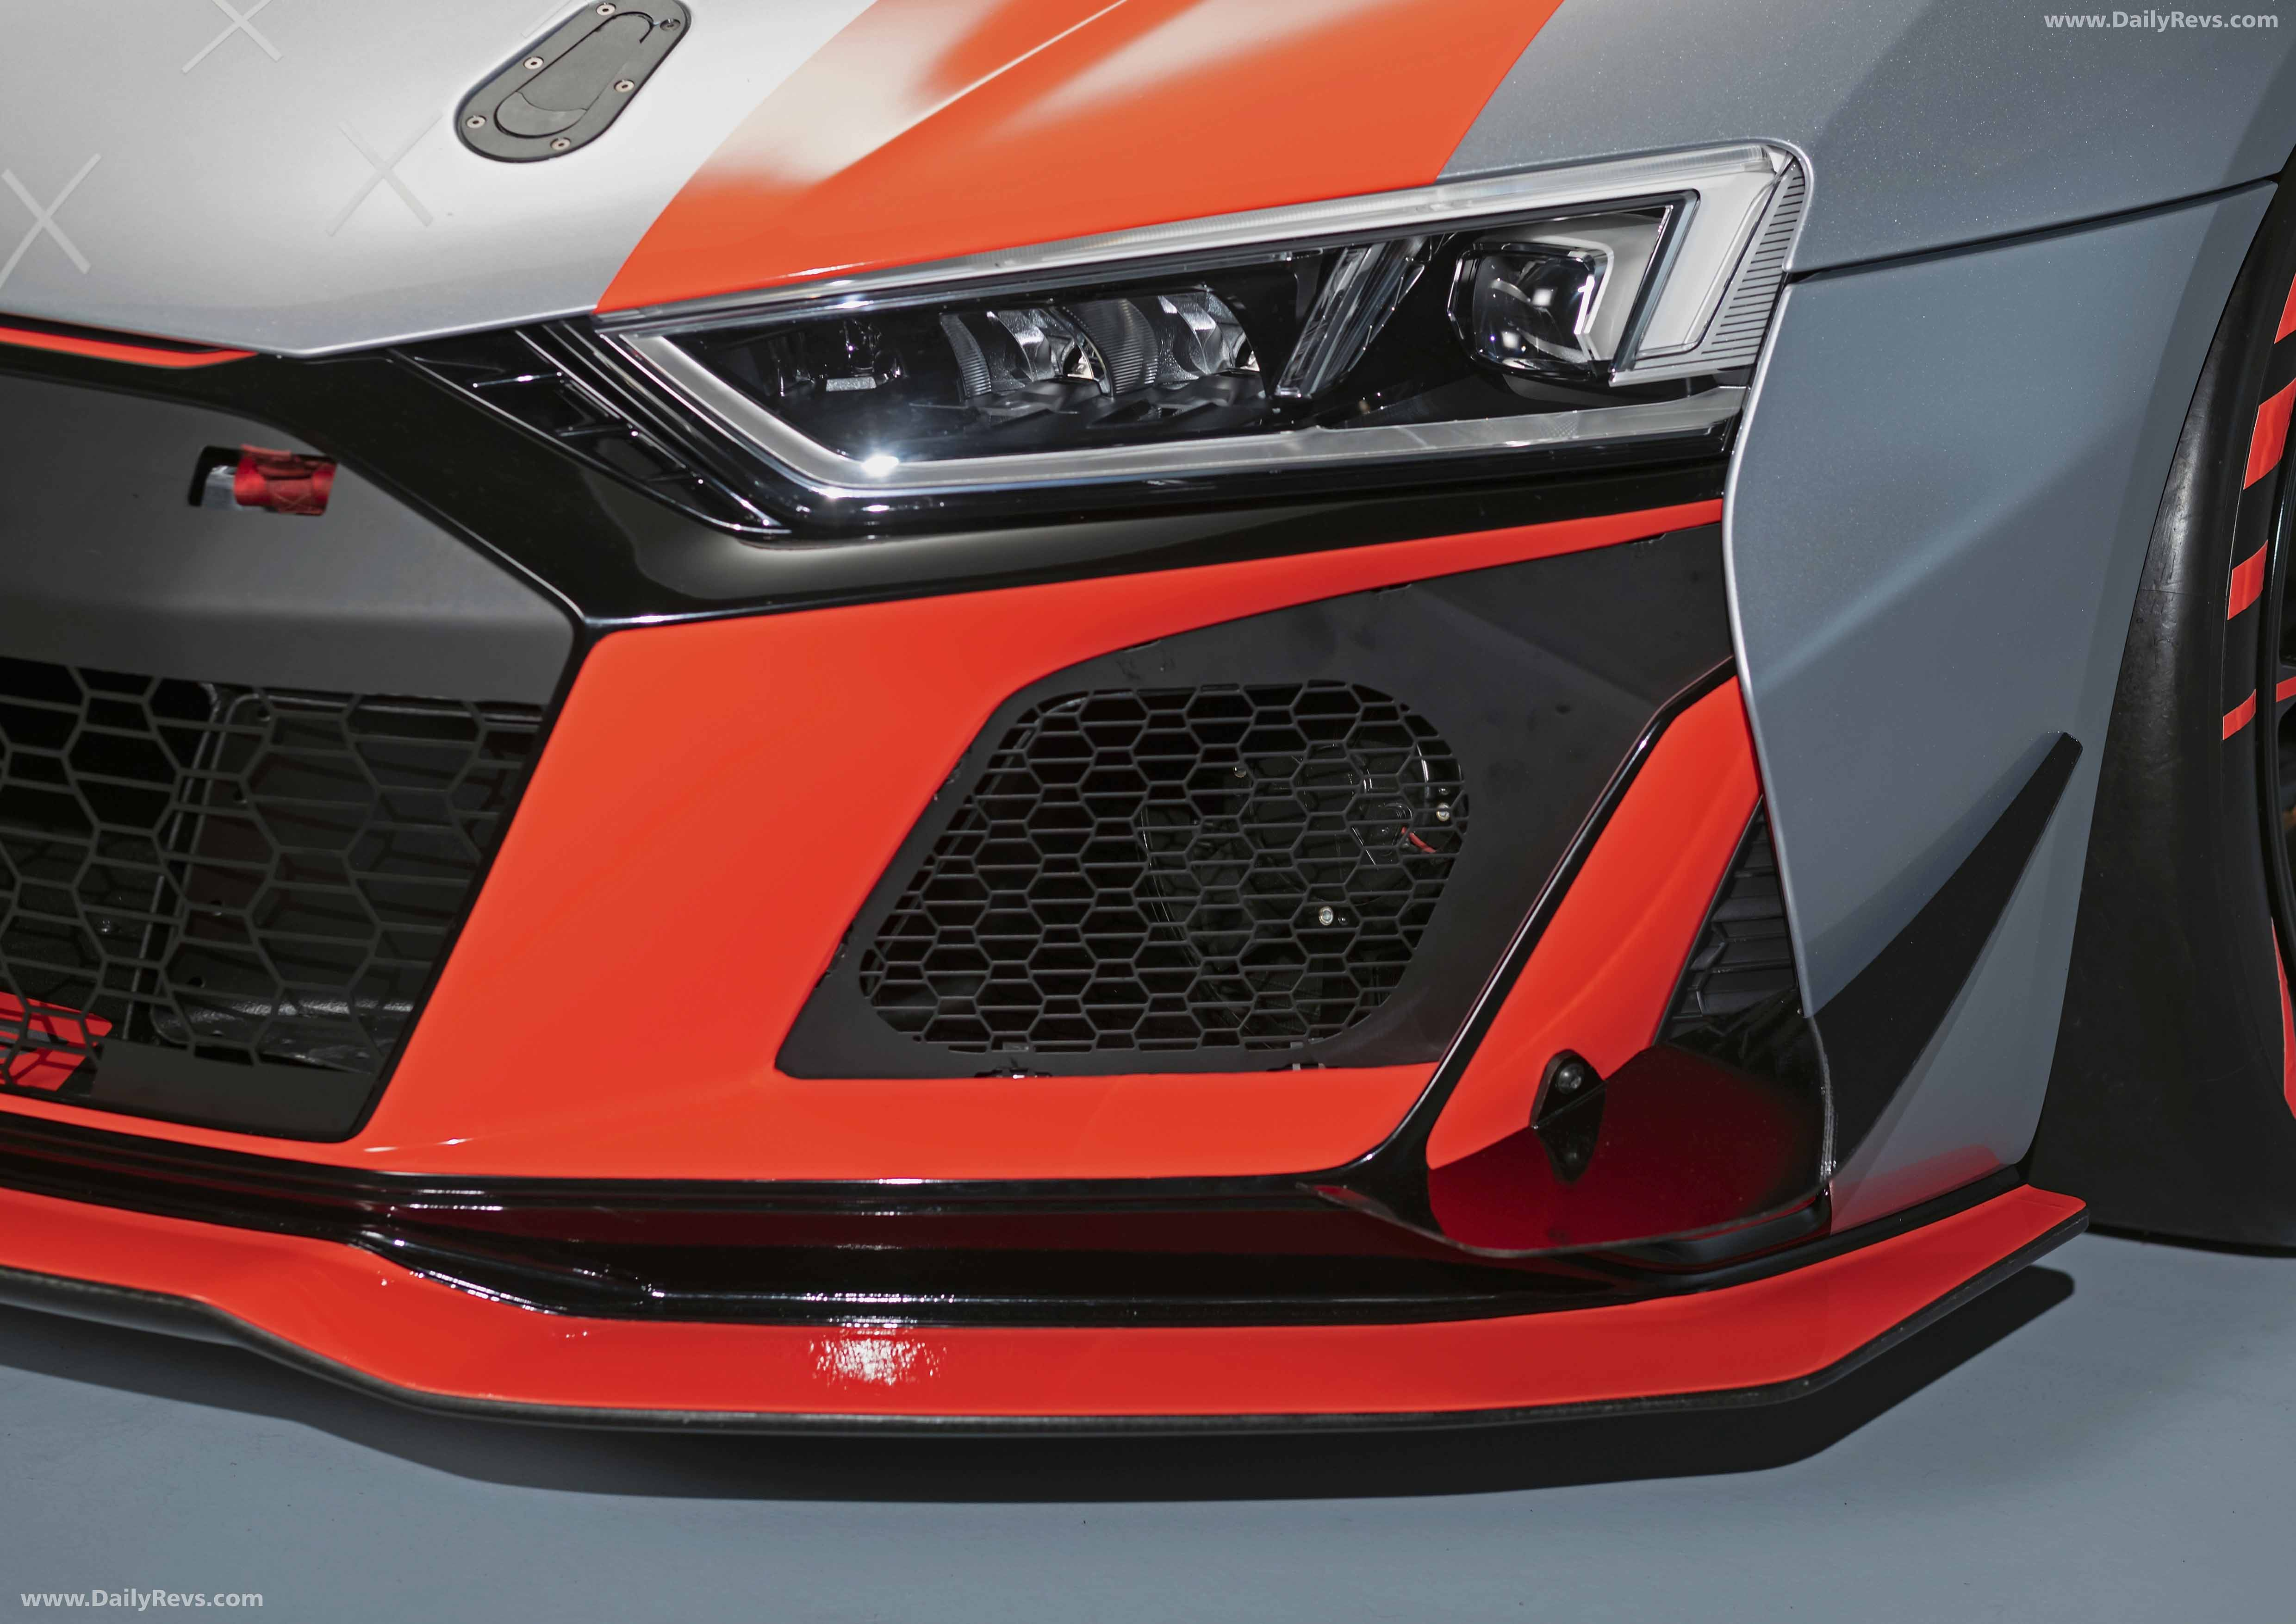 2020 Audi R8 LMS GT4 - Pictures, Images & Wallpapers ...